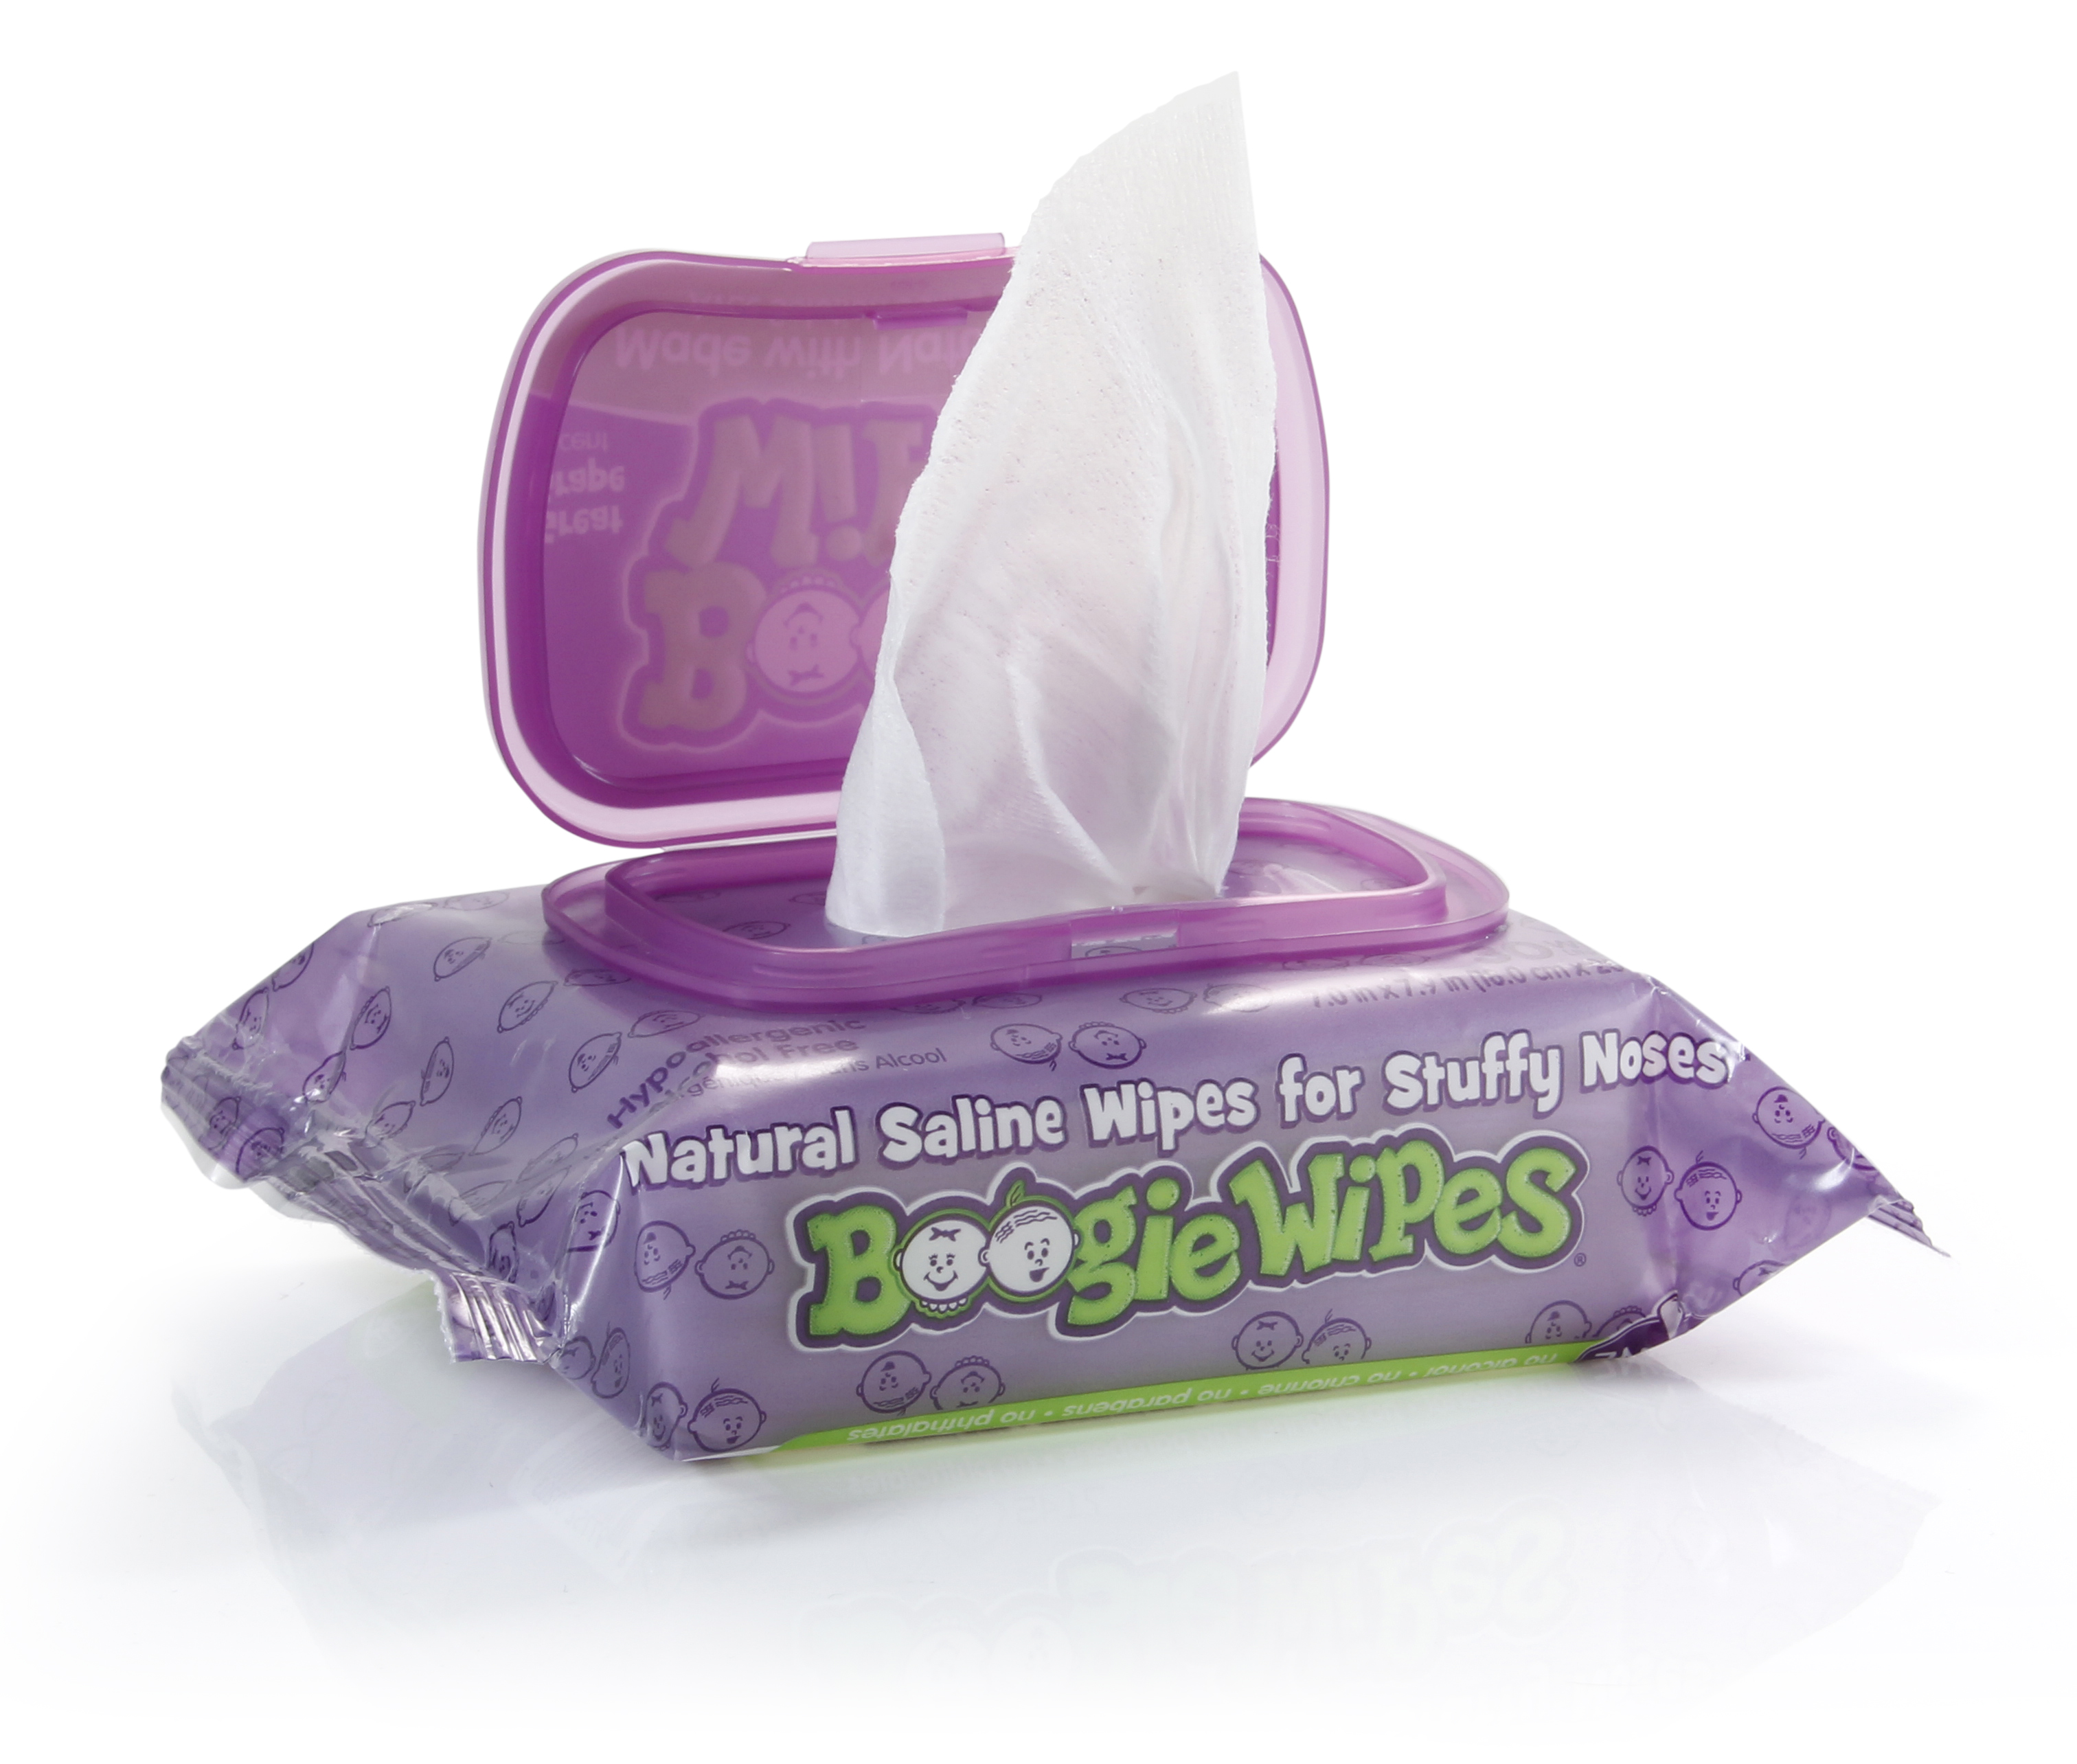 Boogie Wipes great grape 45 pack open